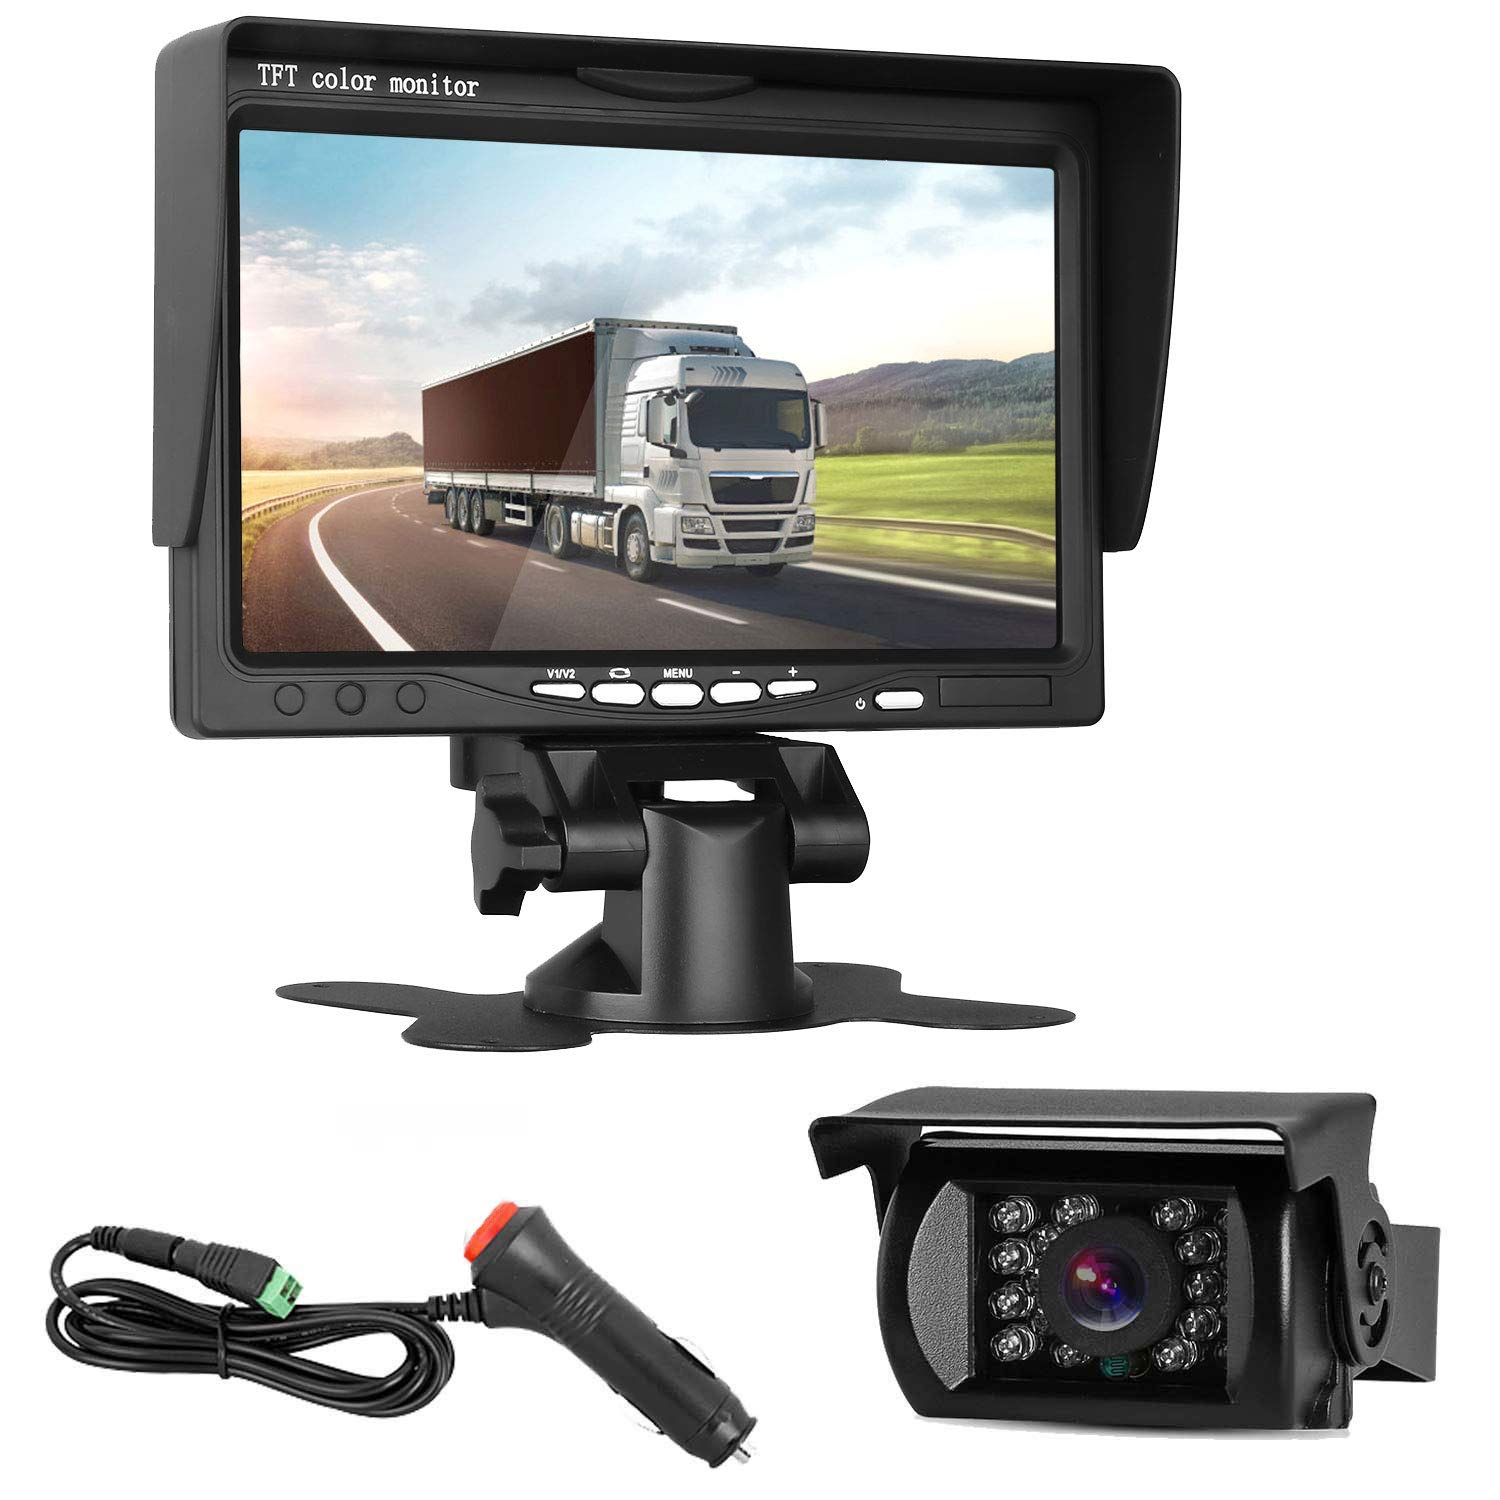 DohonesBest Backup Camera and 7''Monitor Kit for Truck/Trailer/RV/Camper Connect Single Power for Whole System Reverse/Constantly Use Optional Waterproof 50Ft RCA Cable IR Night Vision by DohonesBest